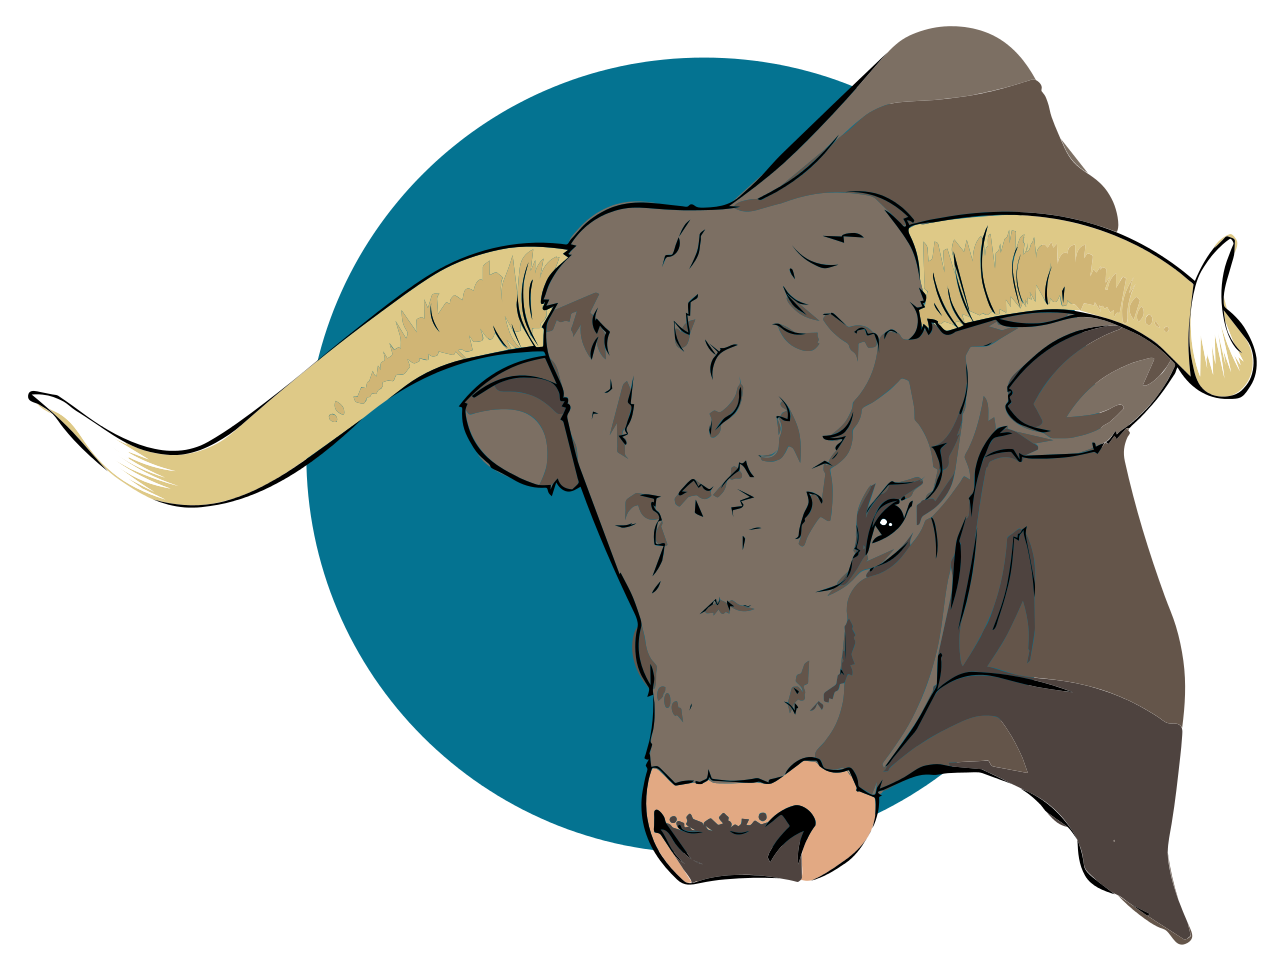 Ox clipart longhorn. Texas brahman cattle goat